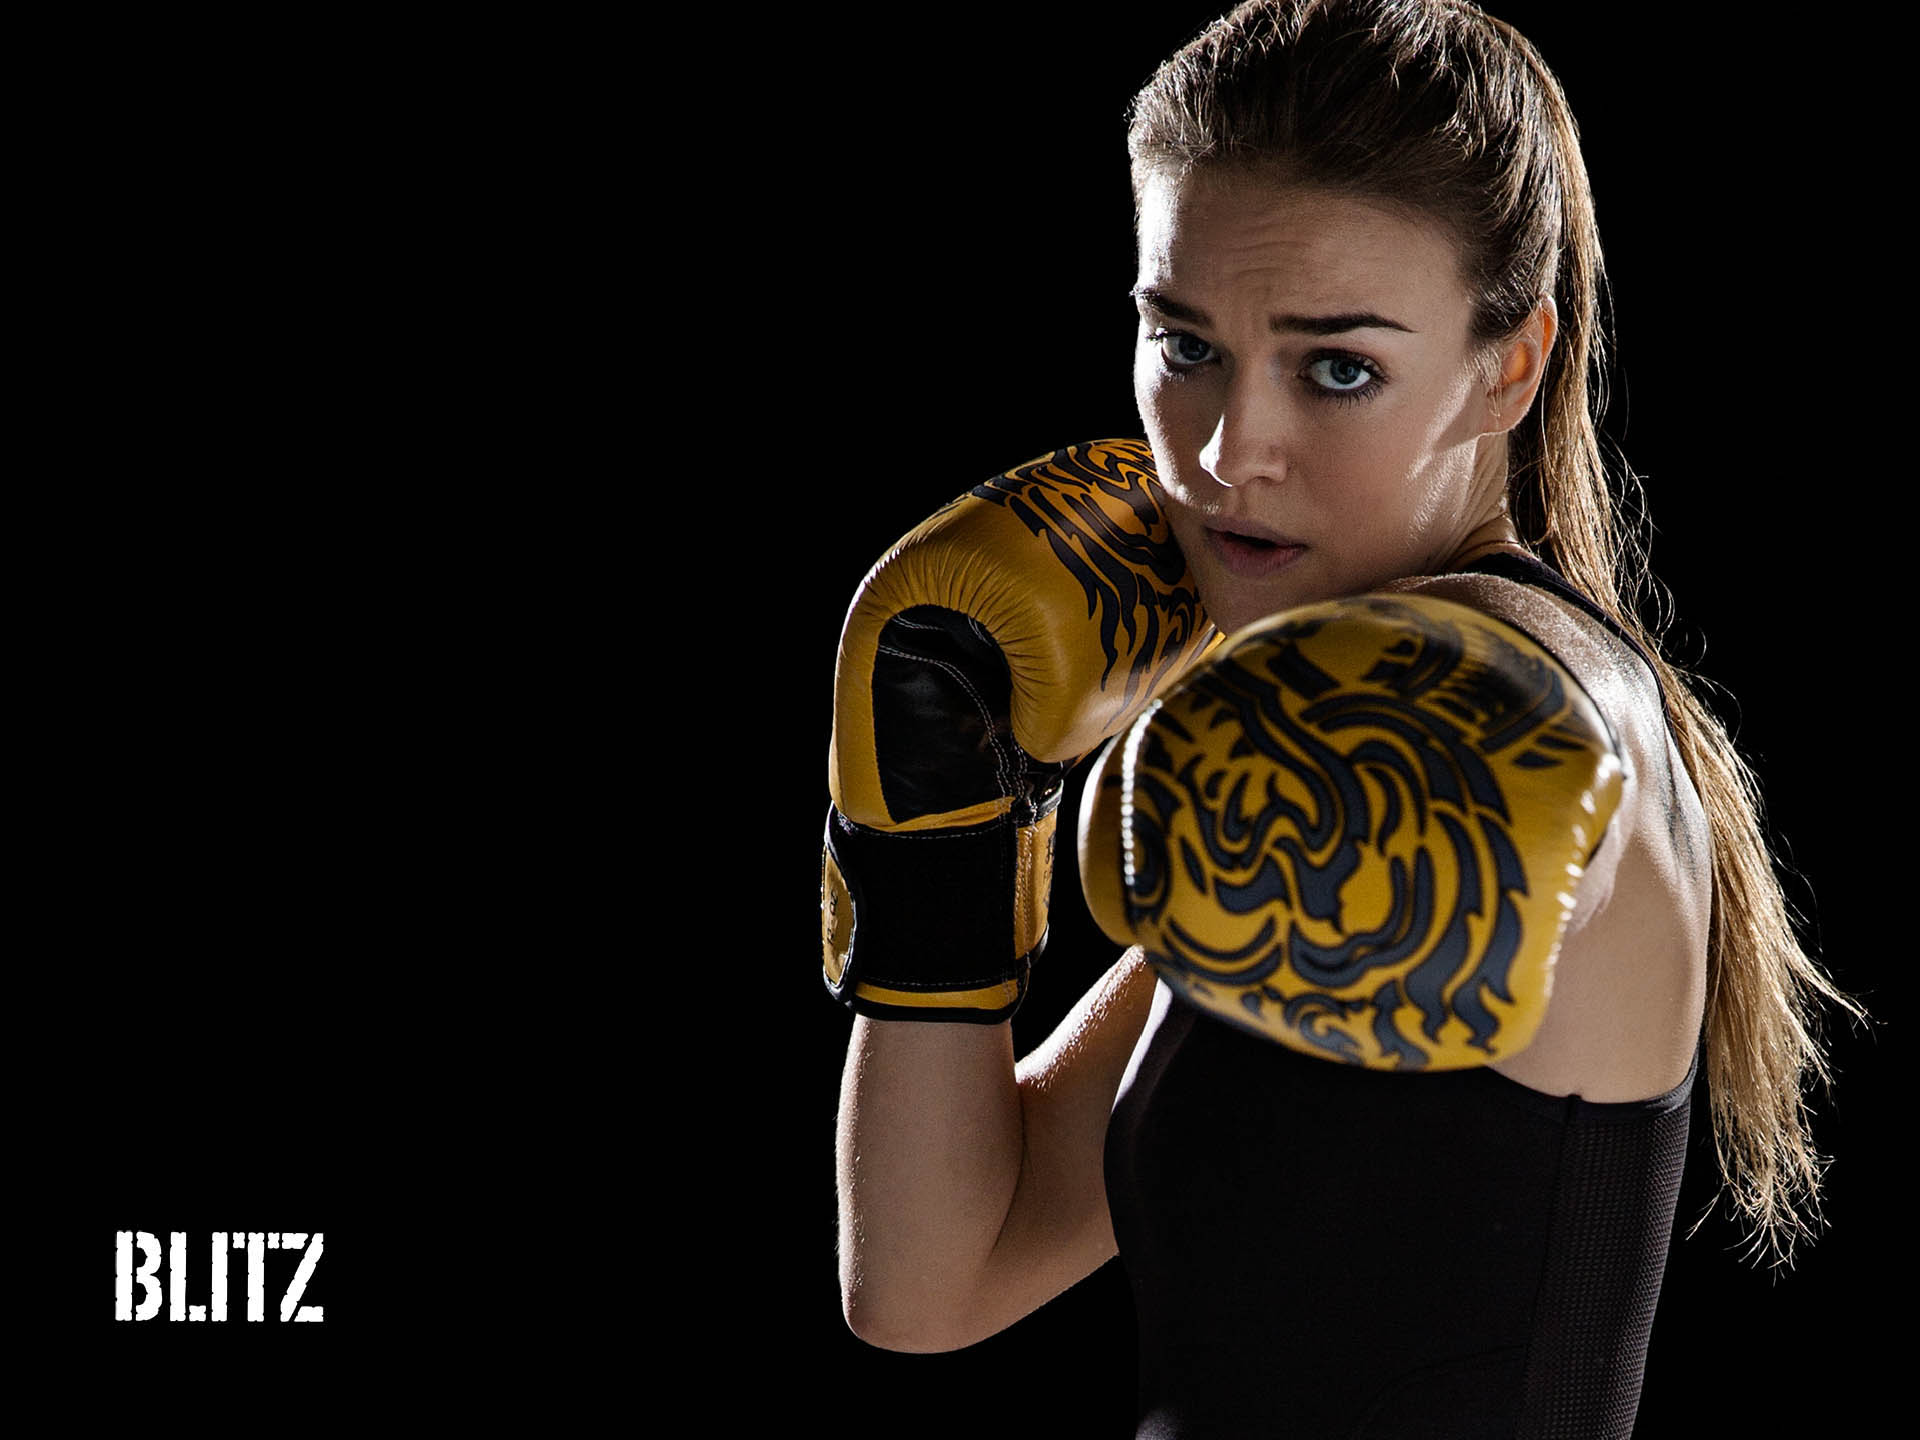 Muay Thai Girl Wallpaper Download The Latest Martial Arts And Karate Wallpapers